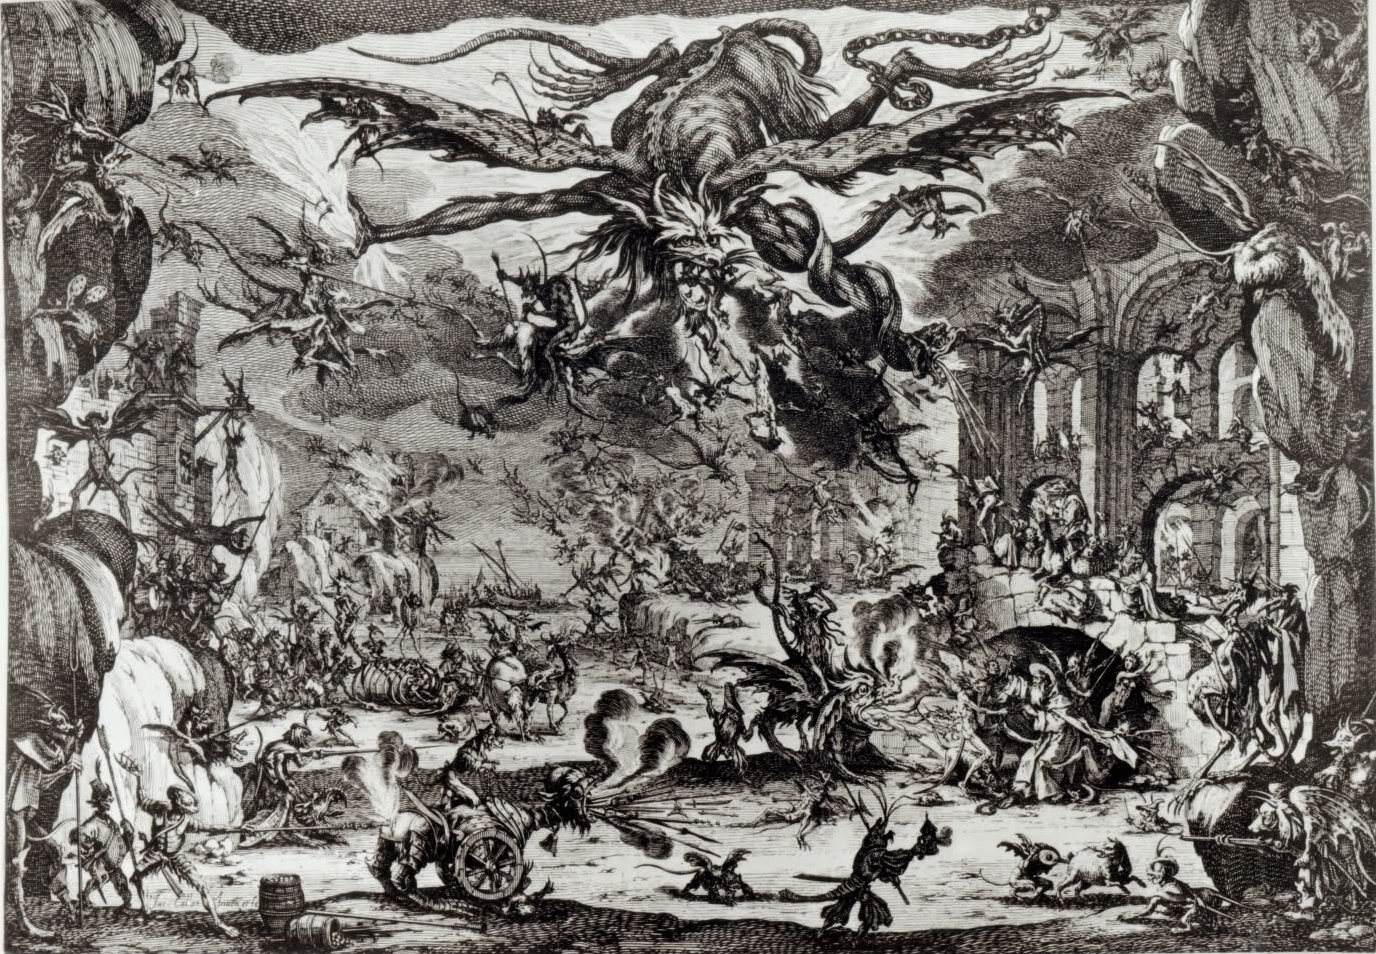 Jacque Callot's The Temptation of St. Anthony (ca. 1635)